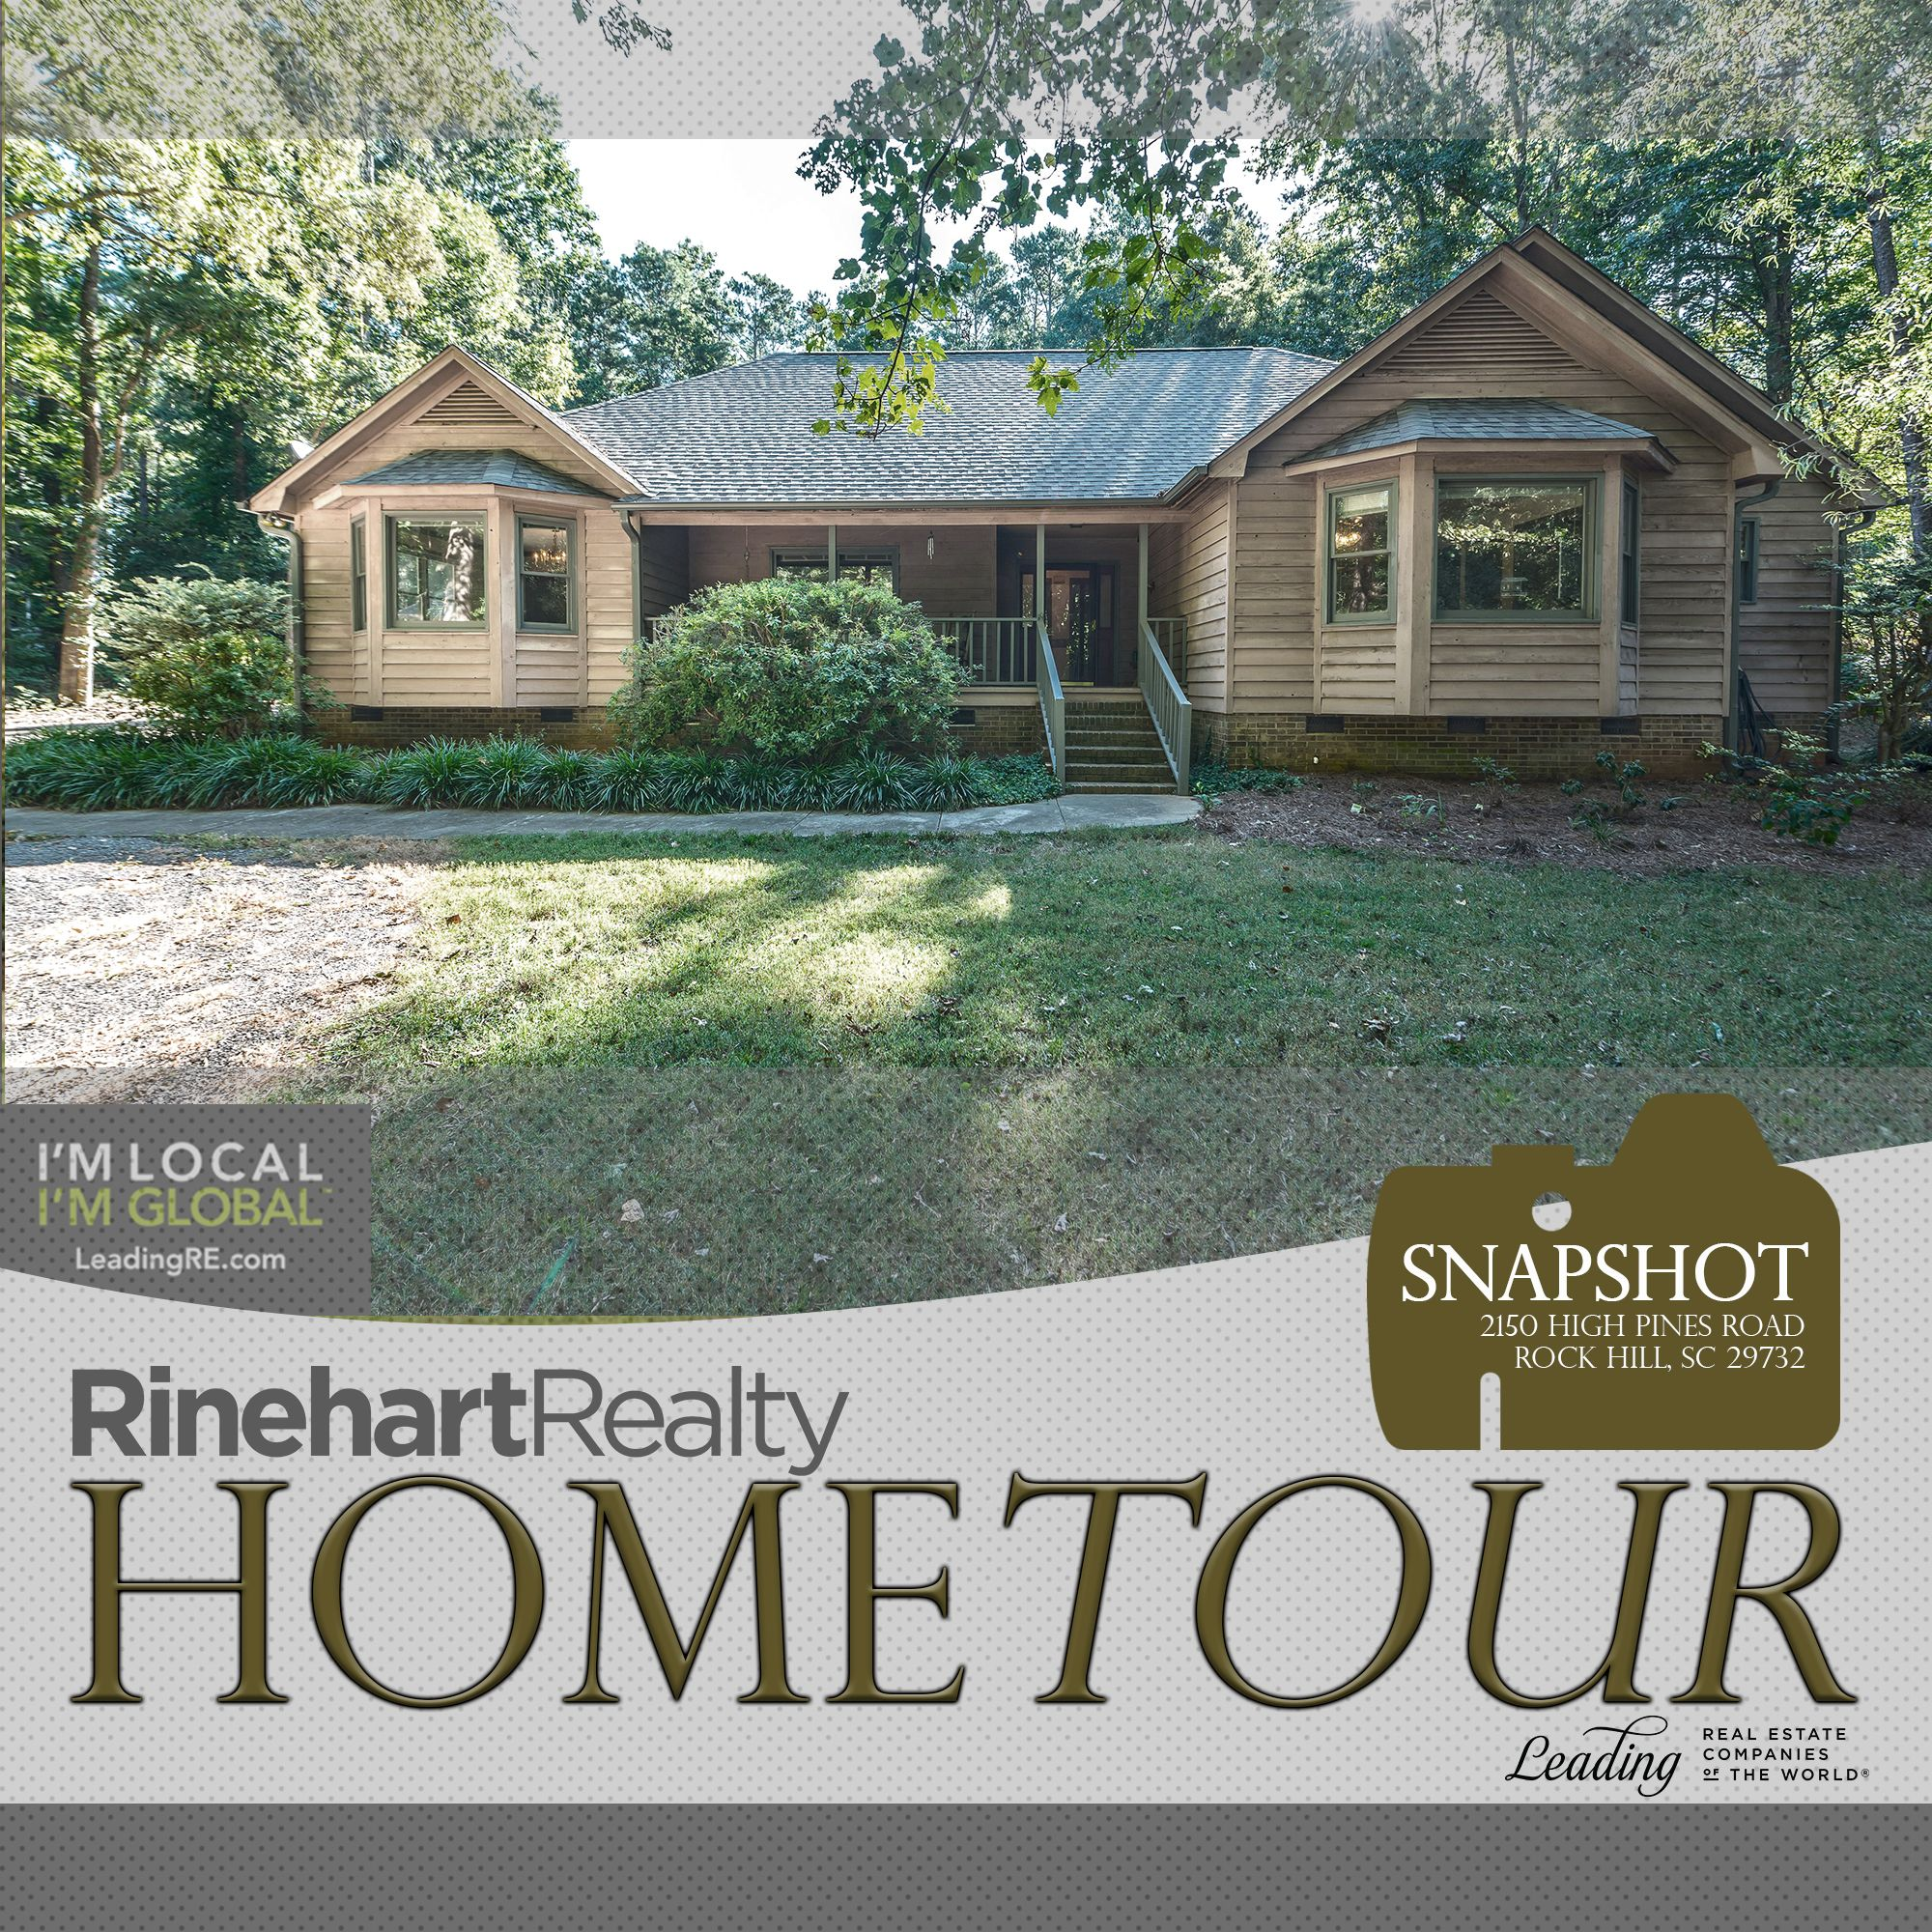 2150 High Pines Road Rock Hill Sc 29732 3208076 Rinehart Realty Rock Hill House Tours House Styles